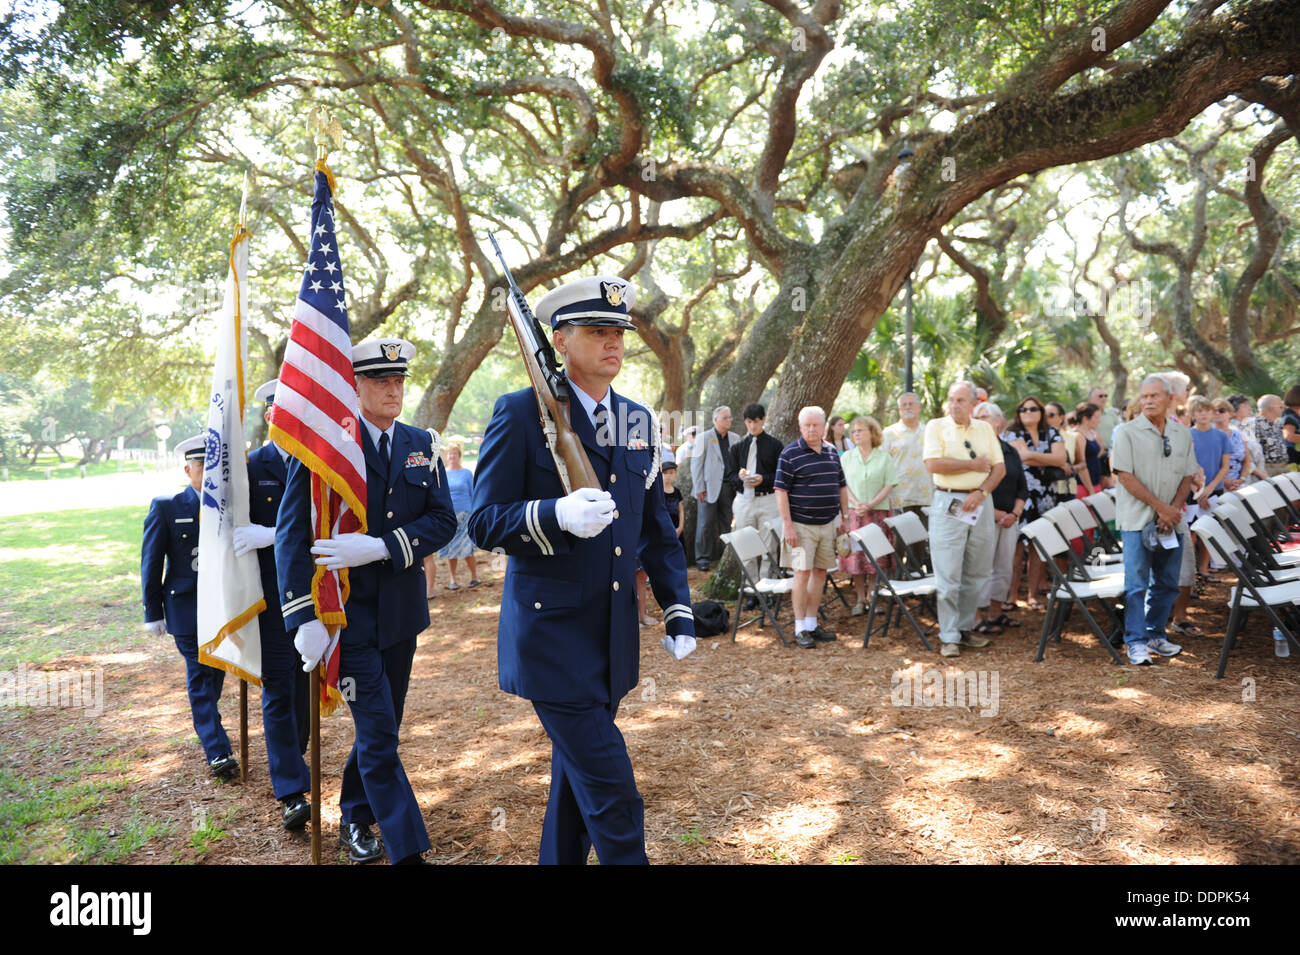 Members of the U.S. Coast Guard Auxiliary post the colors Saturday, Aug. 31, 2013, at the St. Augustine Lighthouse and Museum du - Stock Image